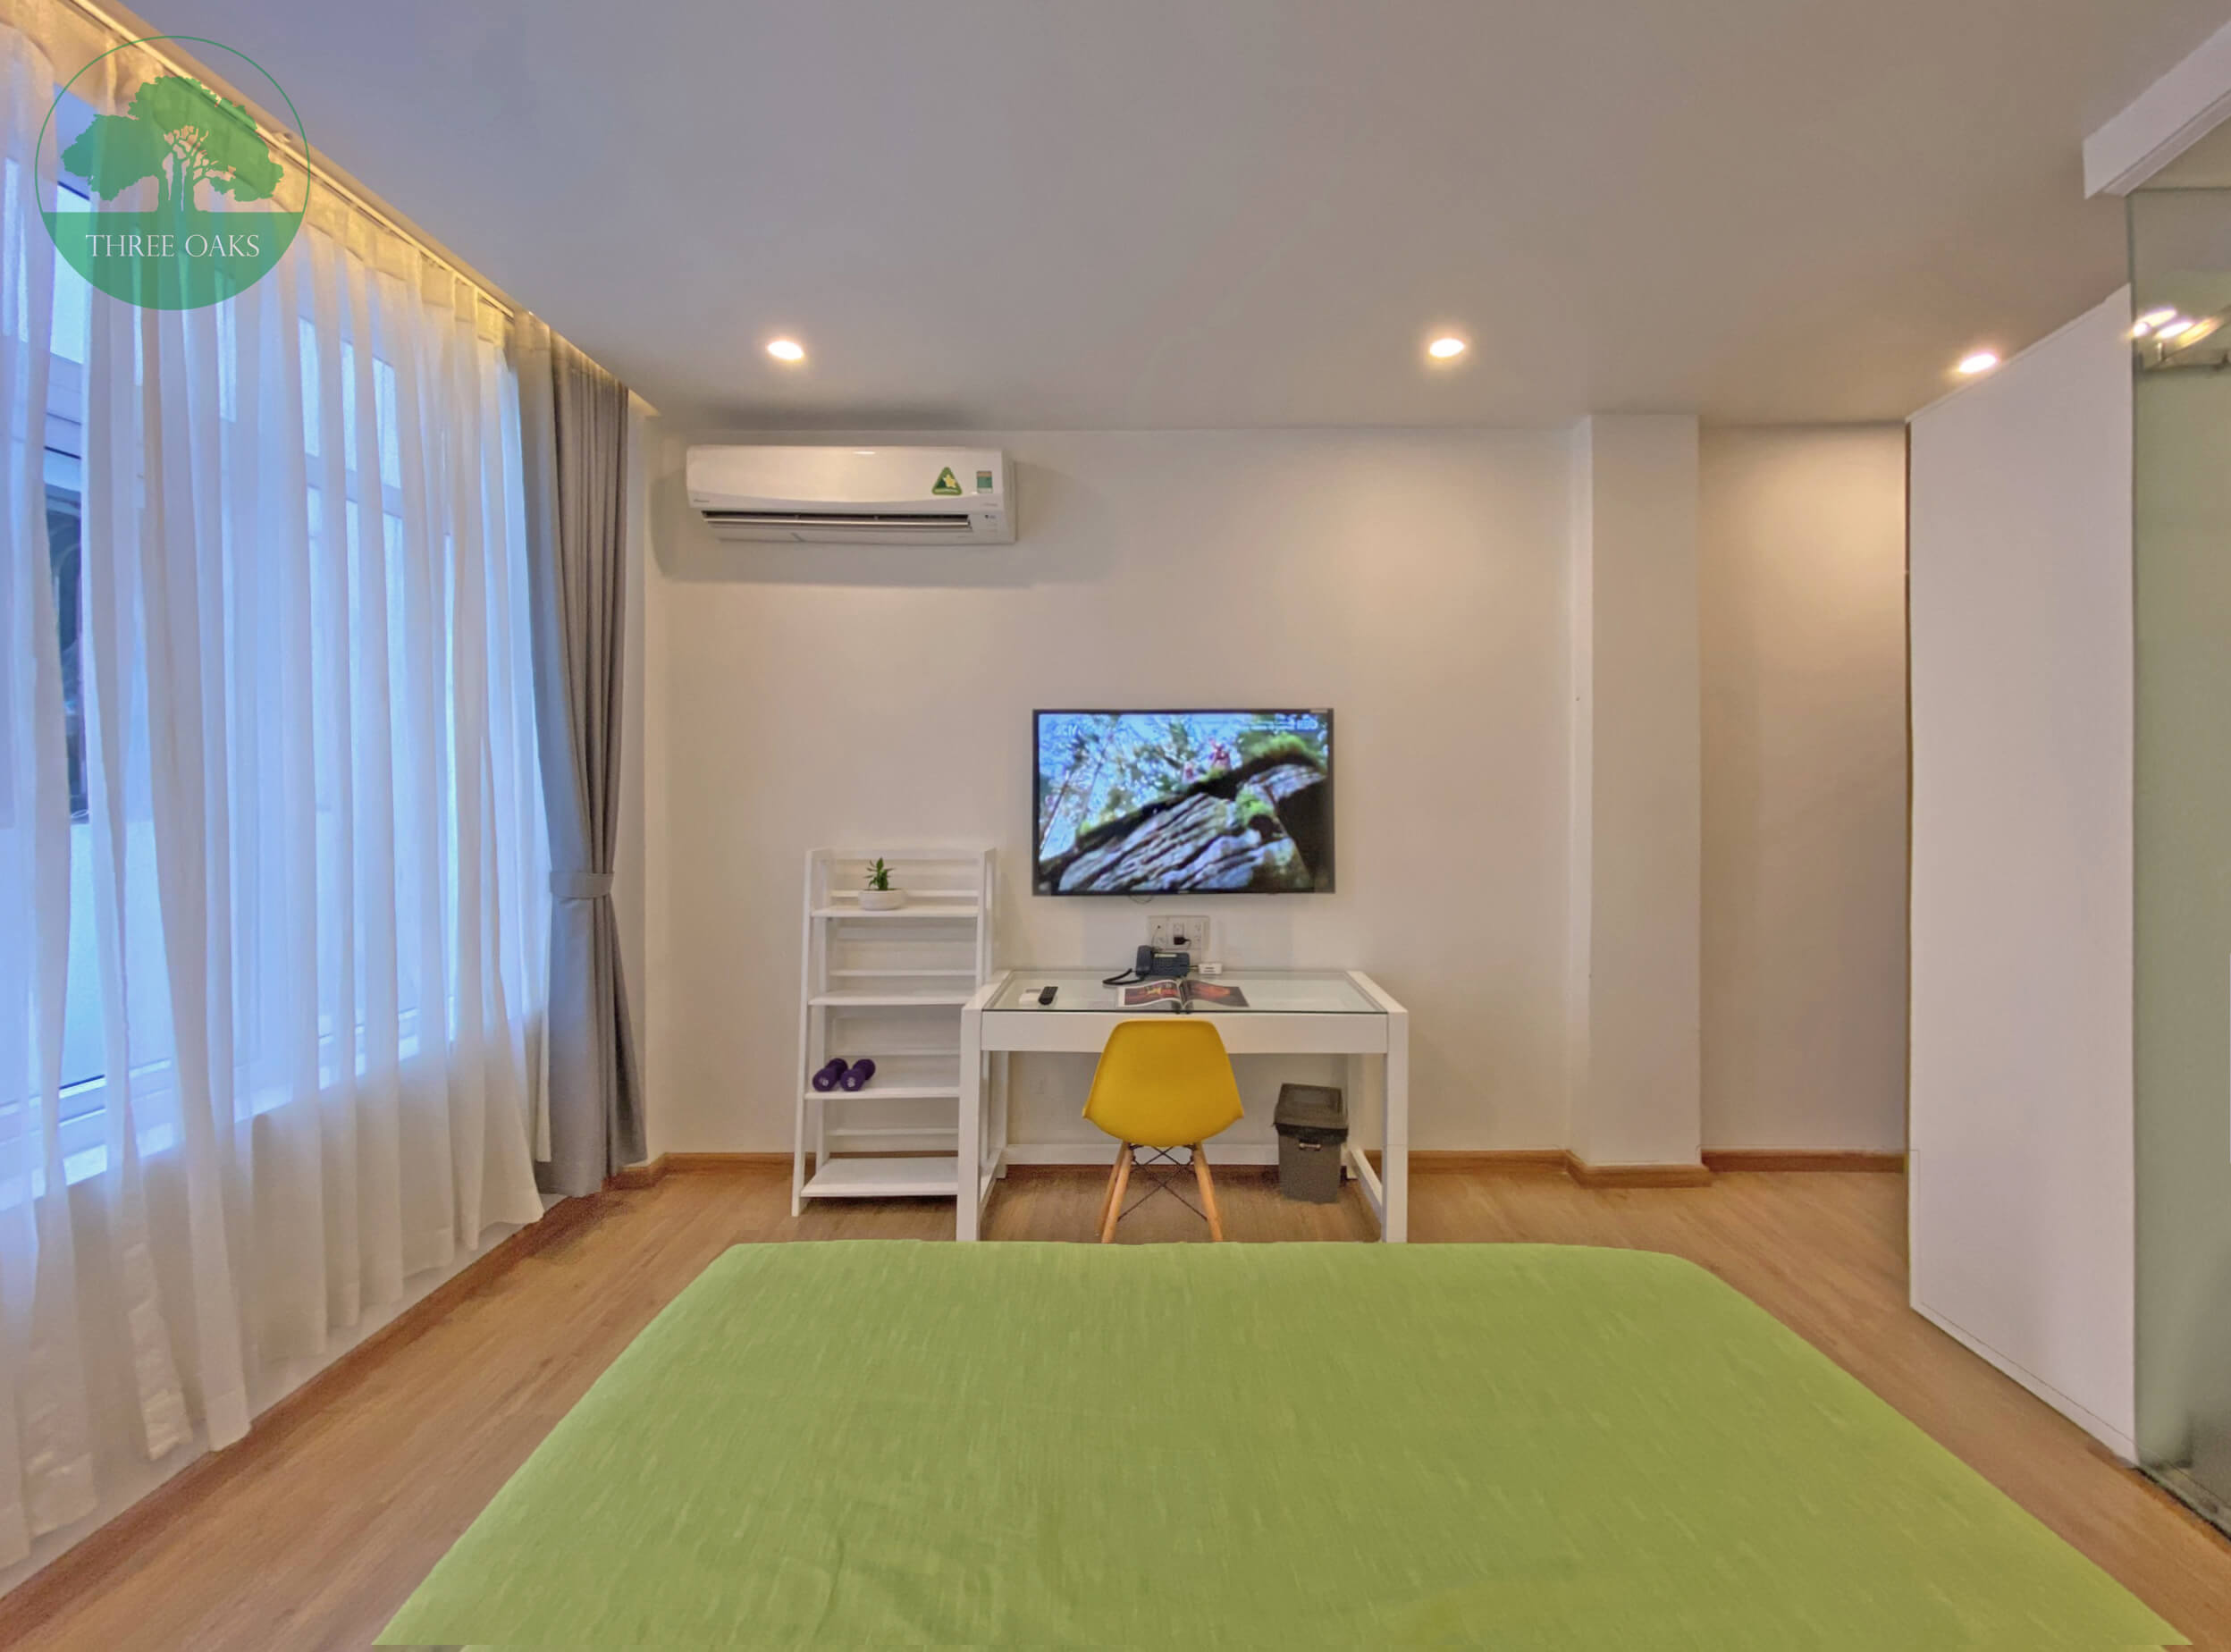 serviced-aparment-room-for-rent-saigon-One-bedroom-in-Ho-Chi-Minh-City-superior-2